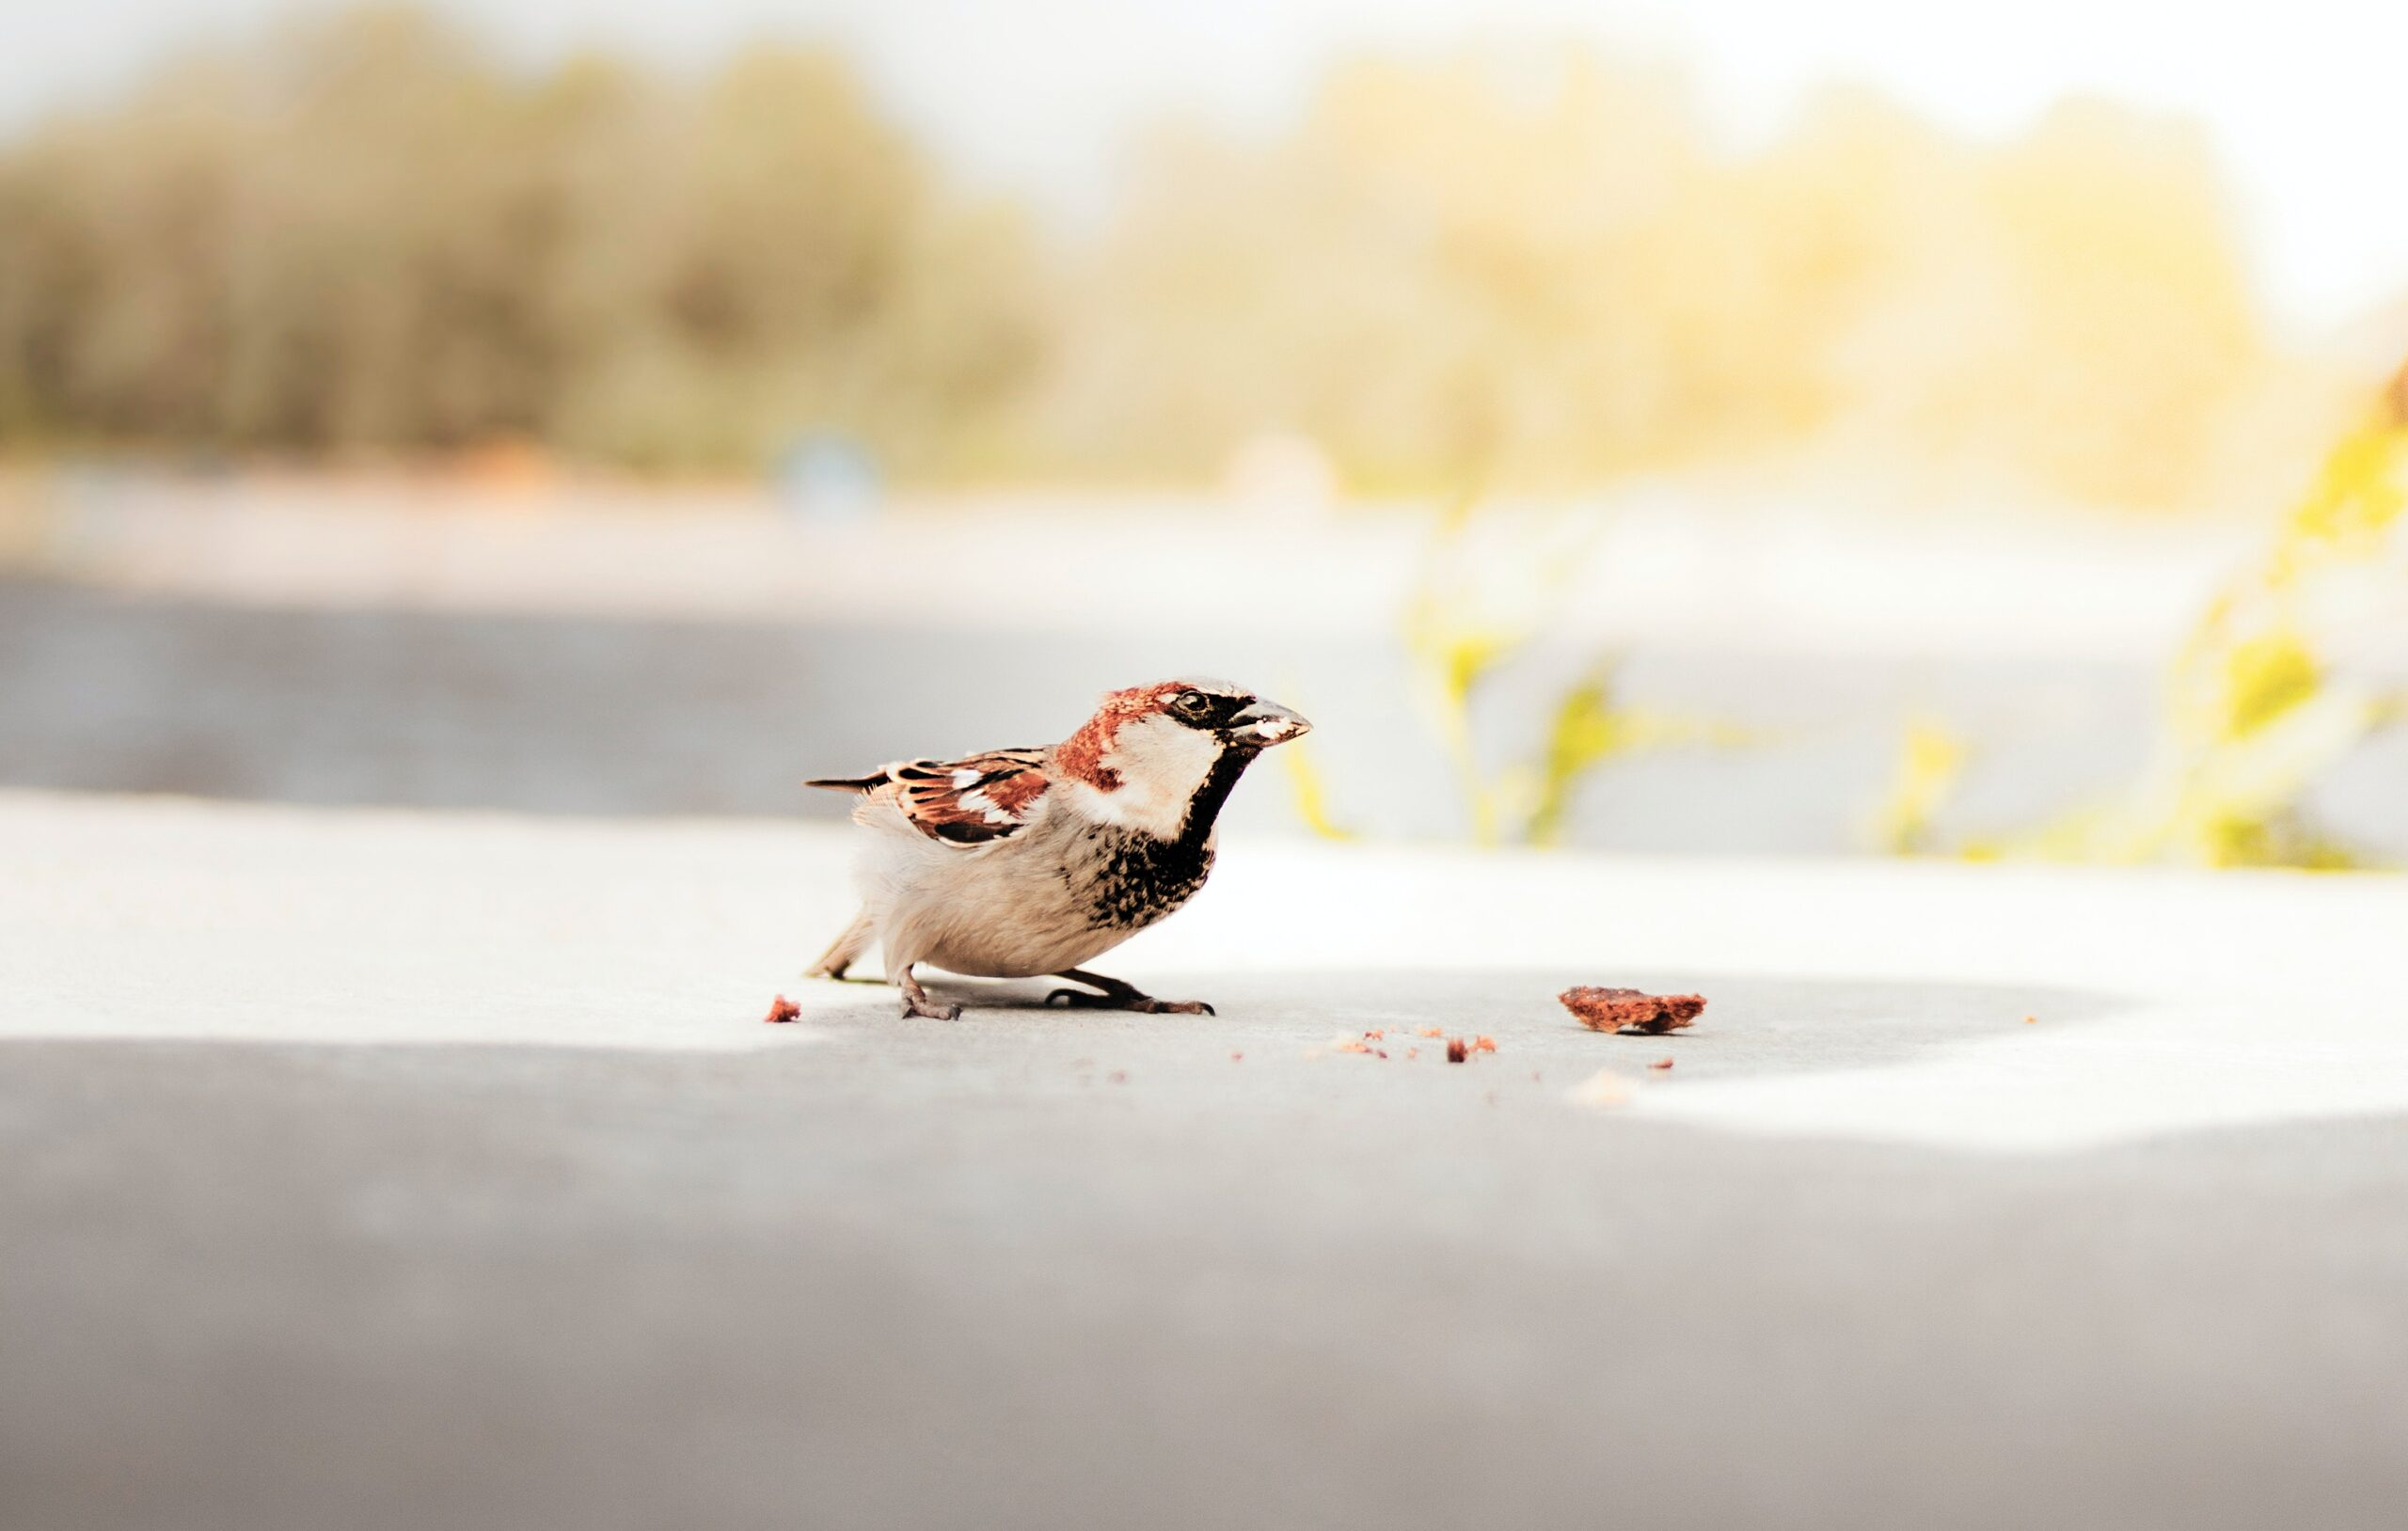 Photo of bird following crumbs. Photo Photo by Dominika Roseclay from Pexels